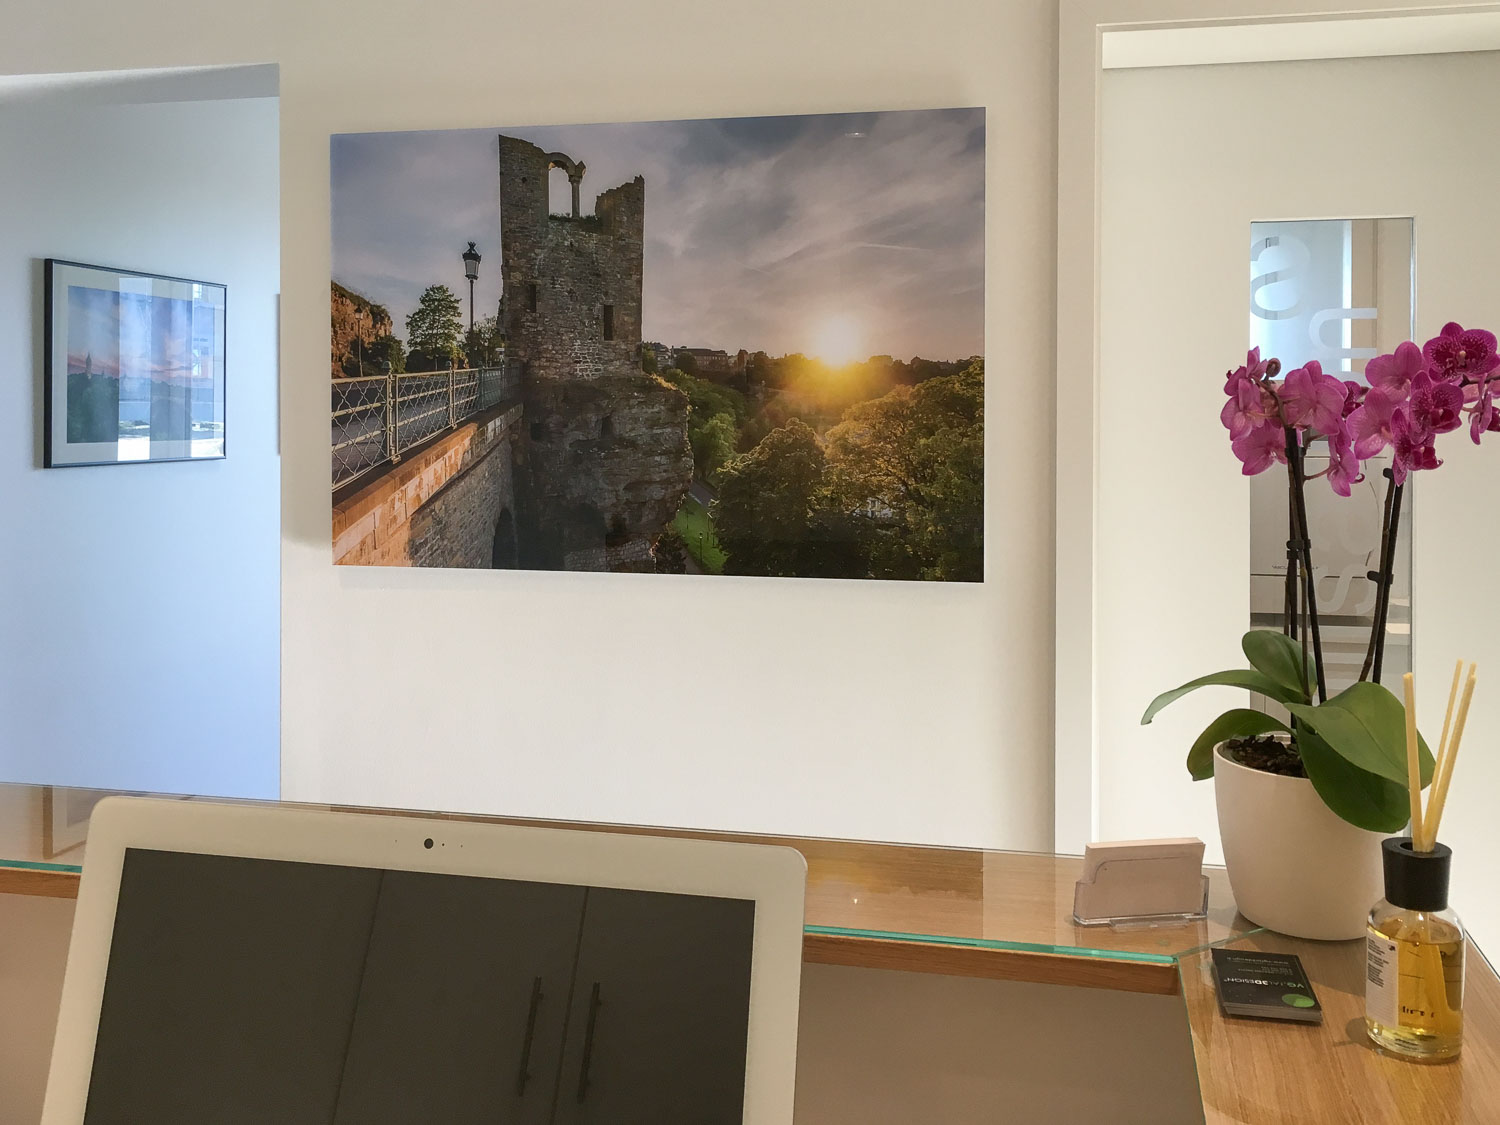 Exhibition at the Klemmer and Benabadji Dental Practice in Mamer - Photography by Christophe Van Biesen - Landscape and Travel Photographer from Luxembourg